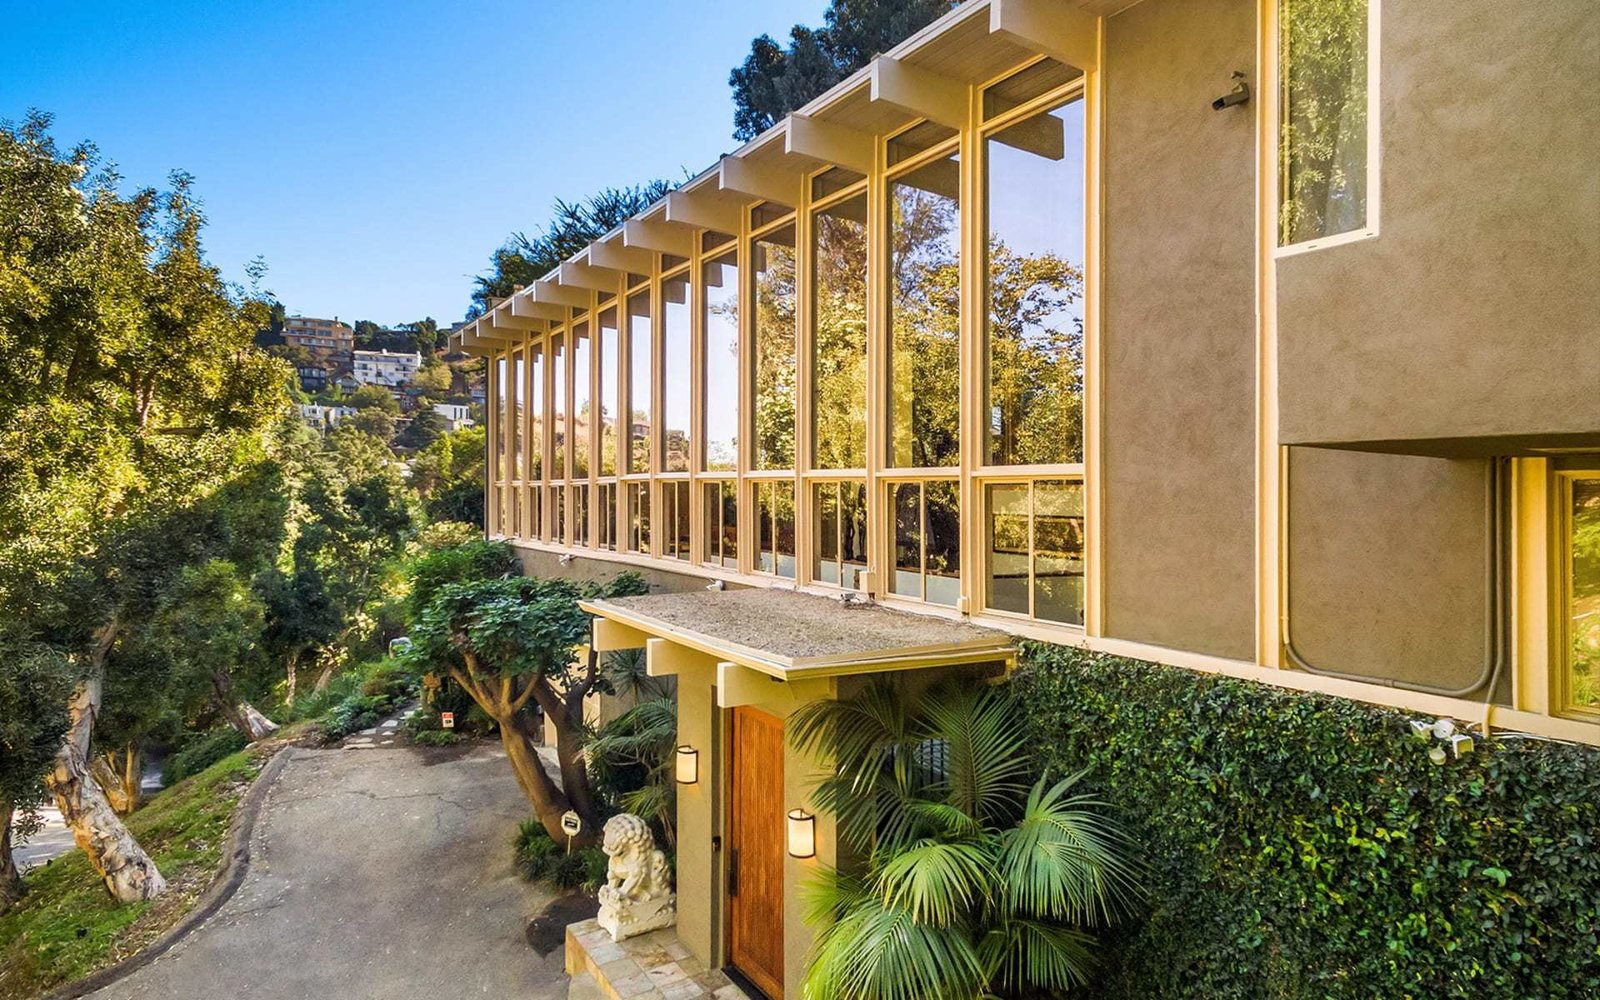 A Lagoon-Style Pool Surrounds This Hollywood Hills Midcentury Home Asking $4.3M